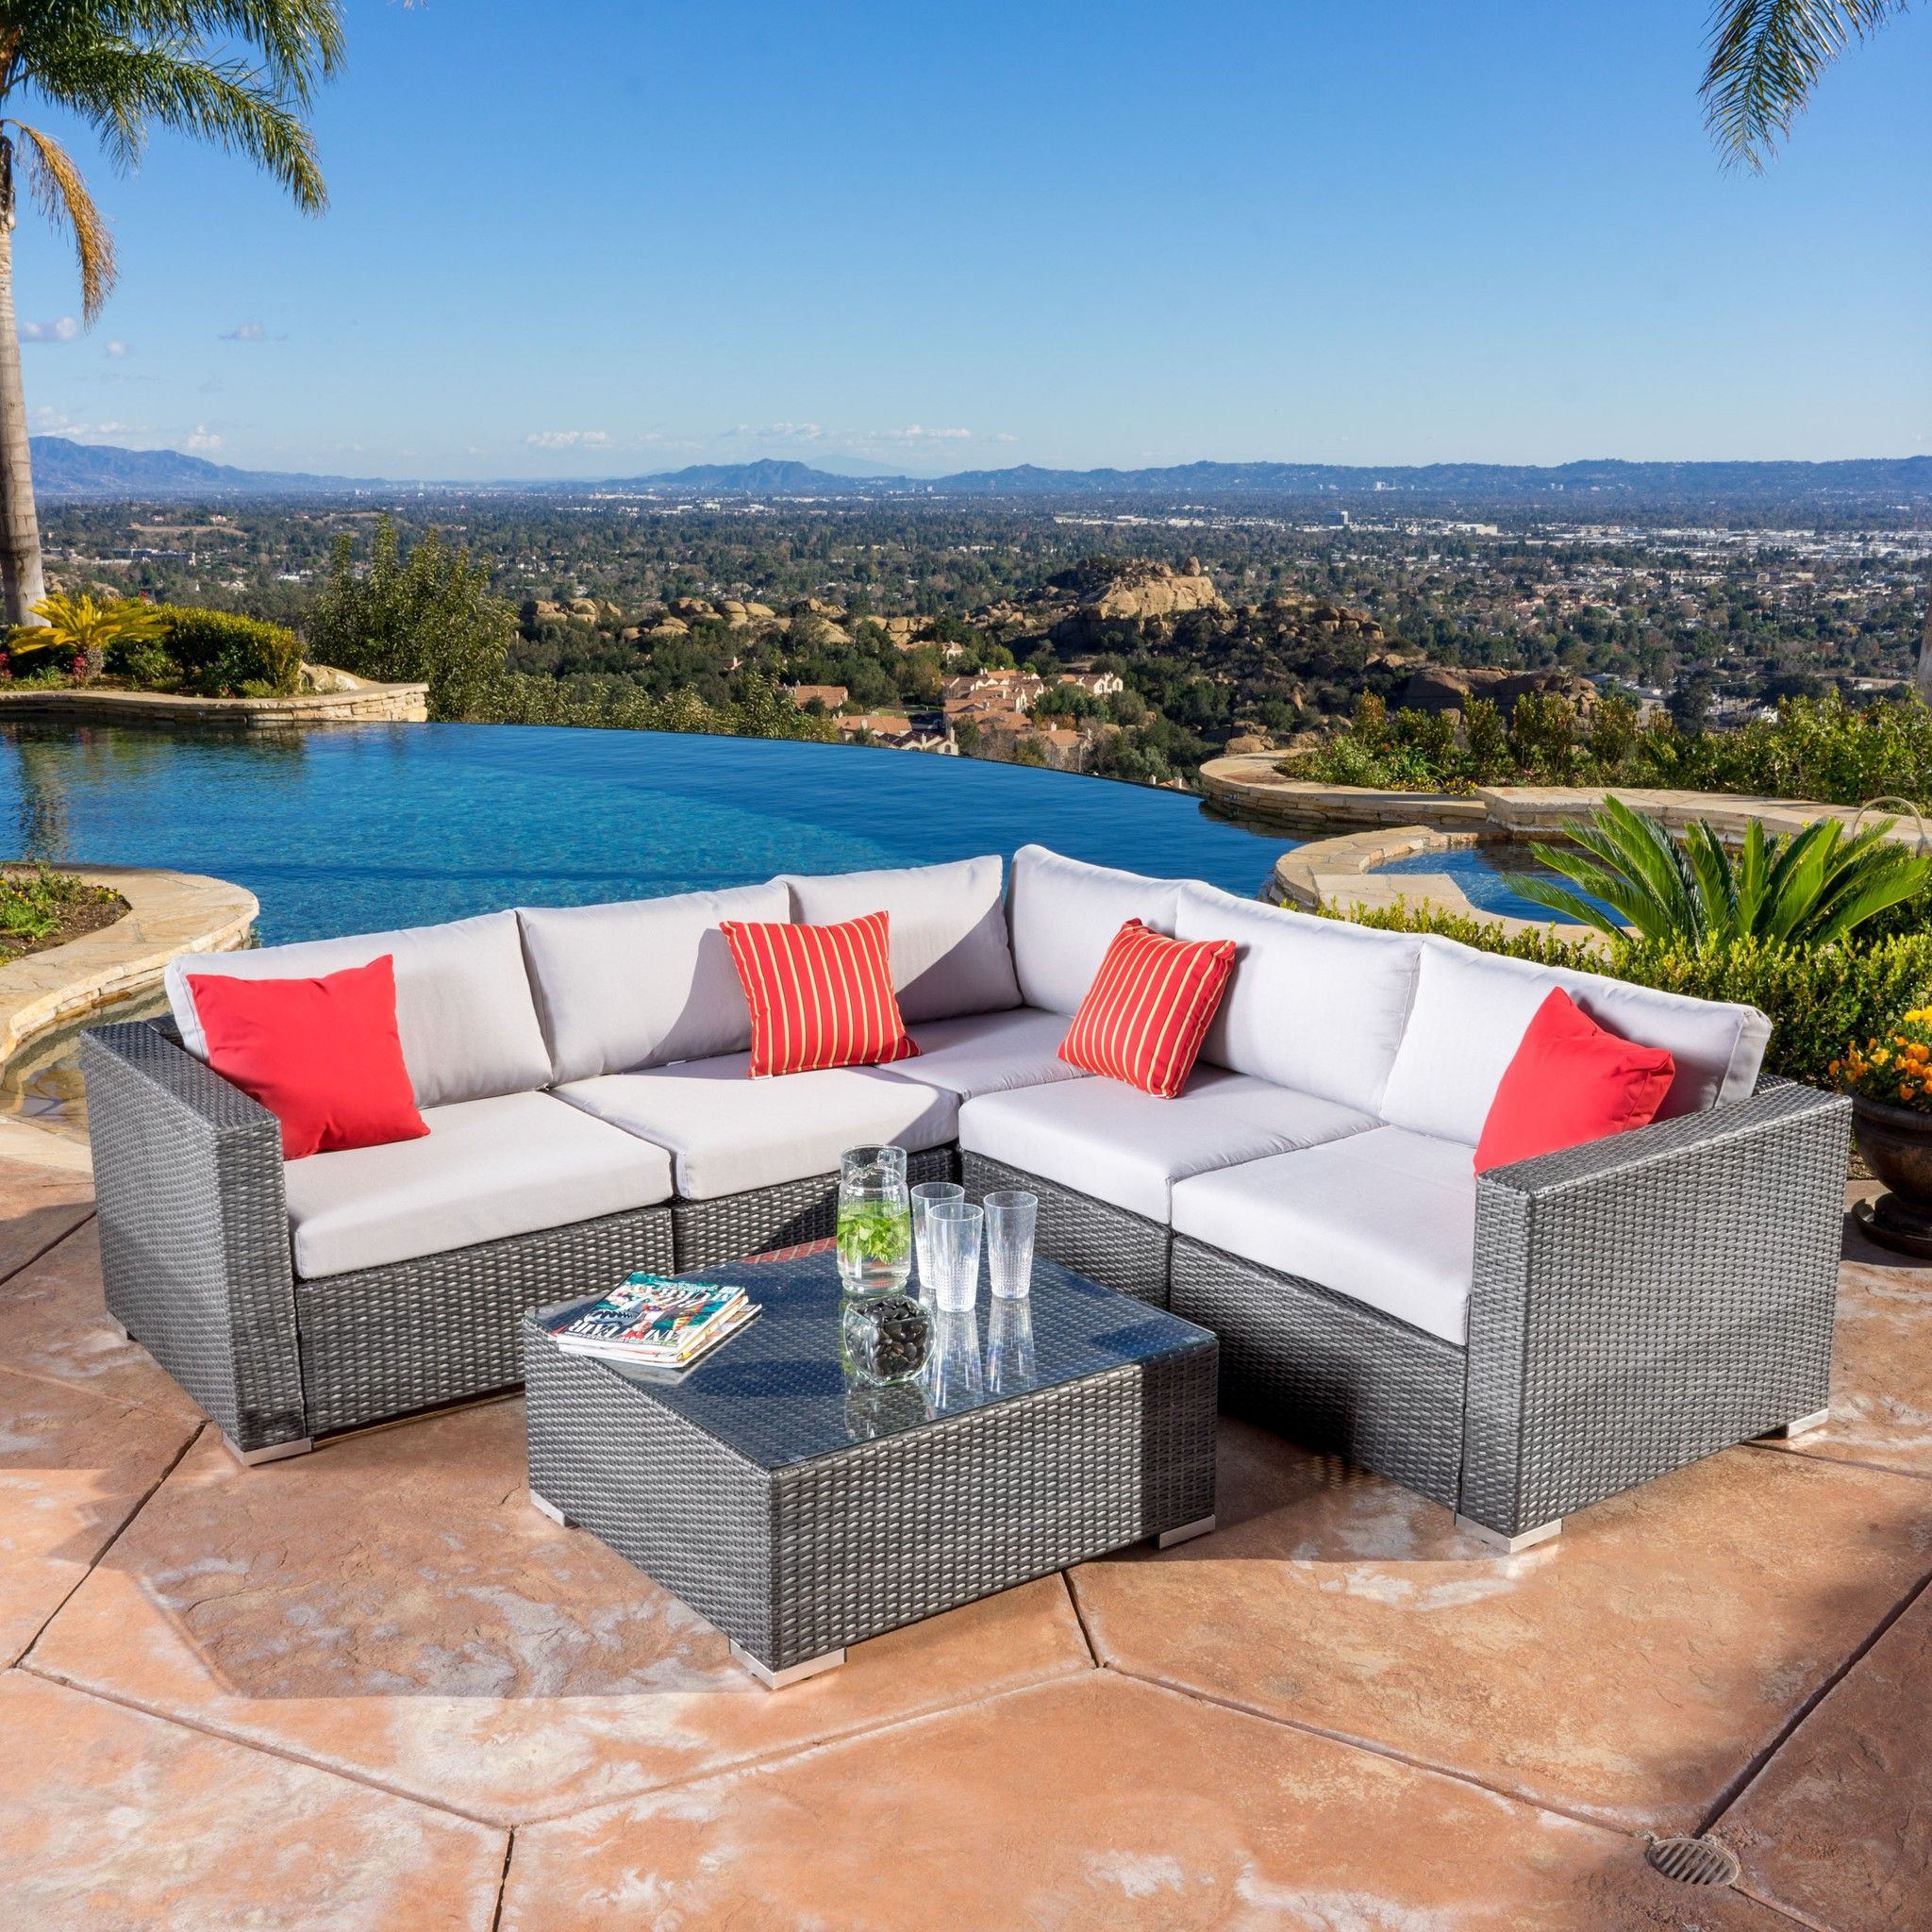 christopher knight home puerta grey outdoor wicker sofa set. Francisco Outdoor 6-piece Grey Wicker Seating Sectional Set With Cushions - . Buy Now Christopher Knight Home Puerta Sofa B